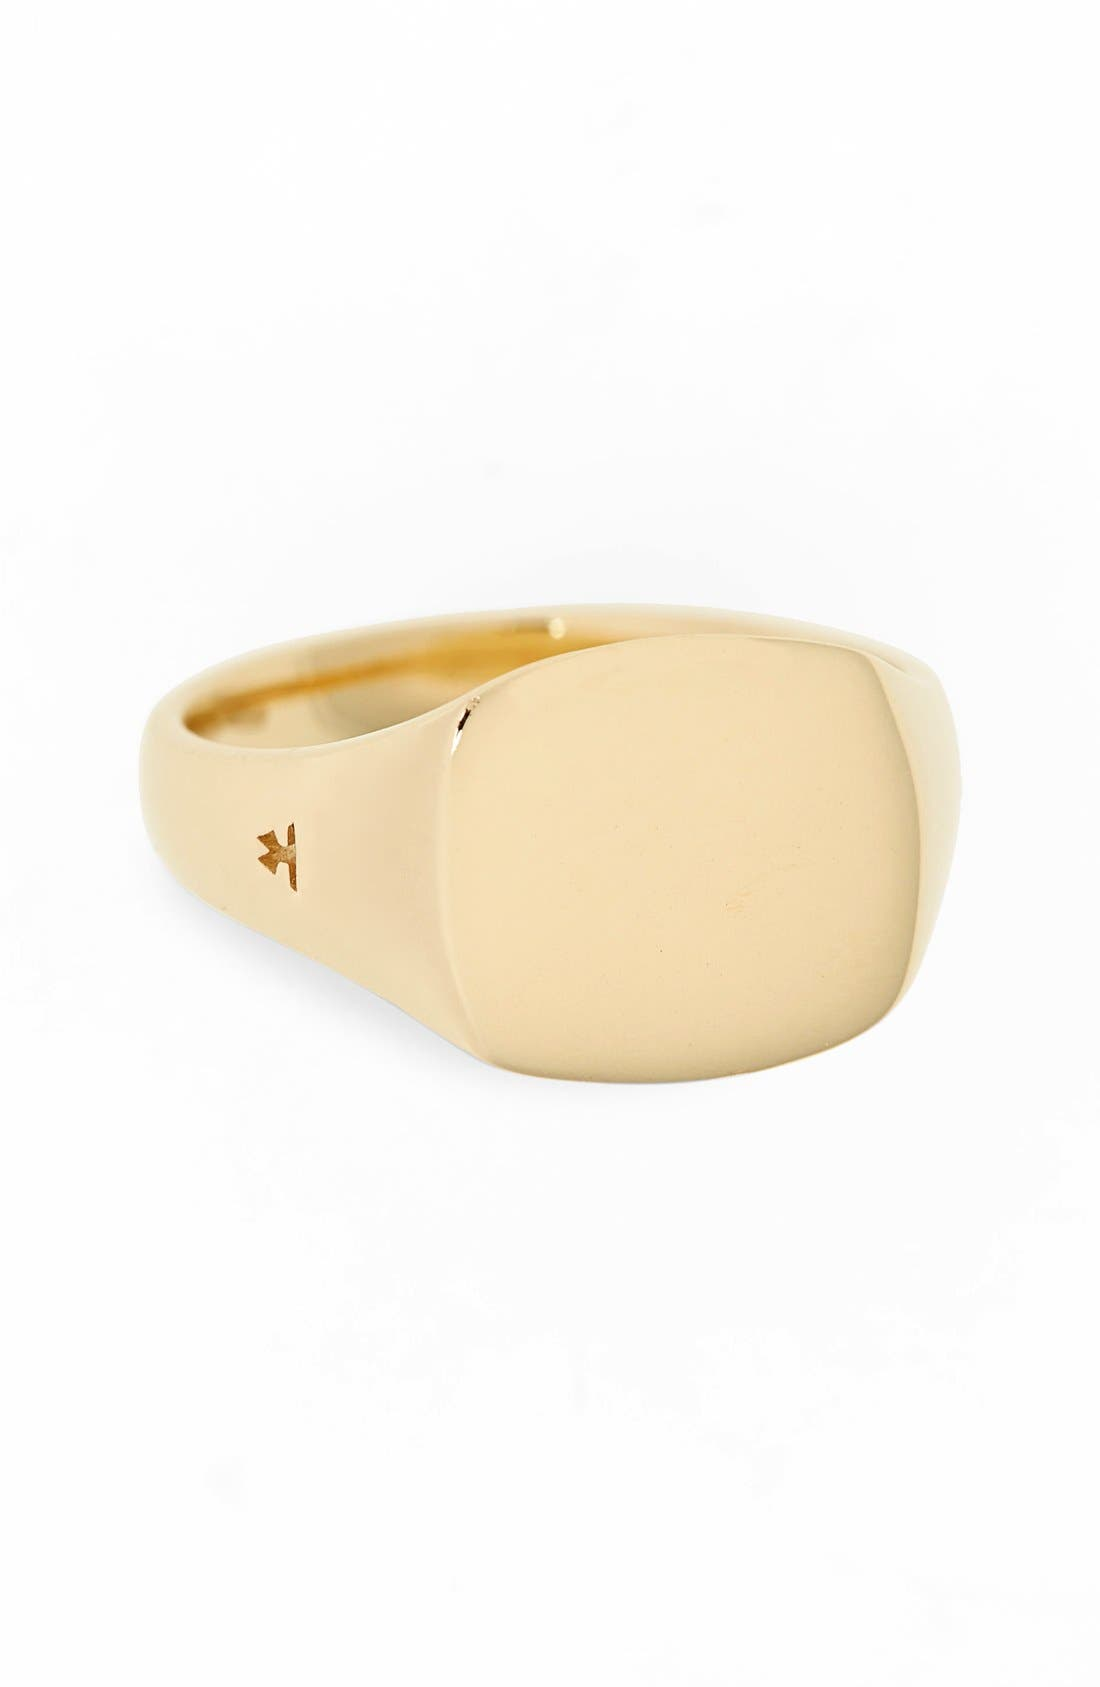 Mini Gold Cushion Signet Ring,                             Main thumbnail 1, color,                             Gold